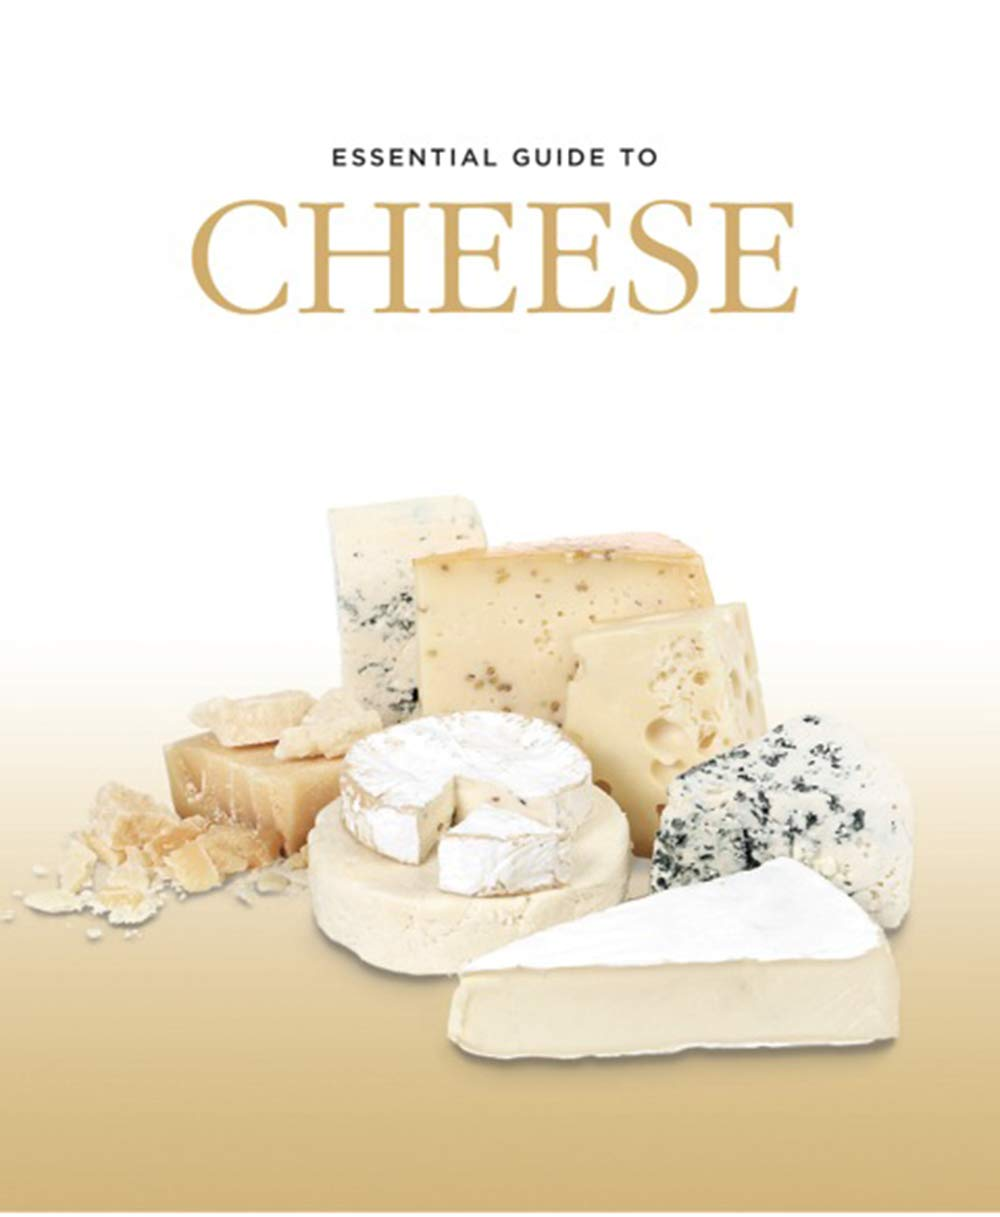 Essential Guide to Cheese thumbnail